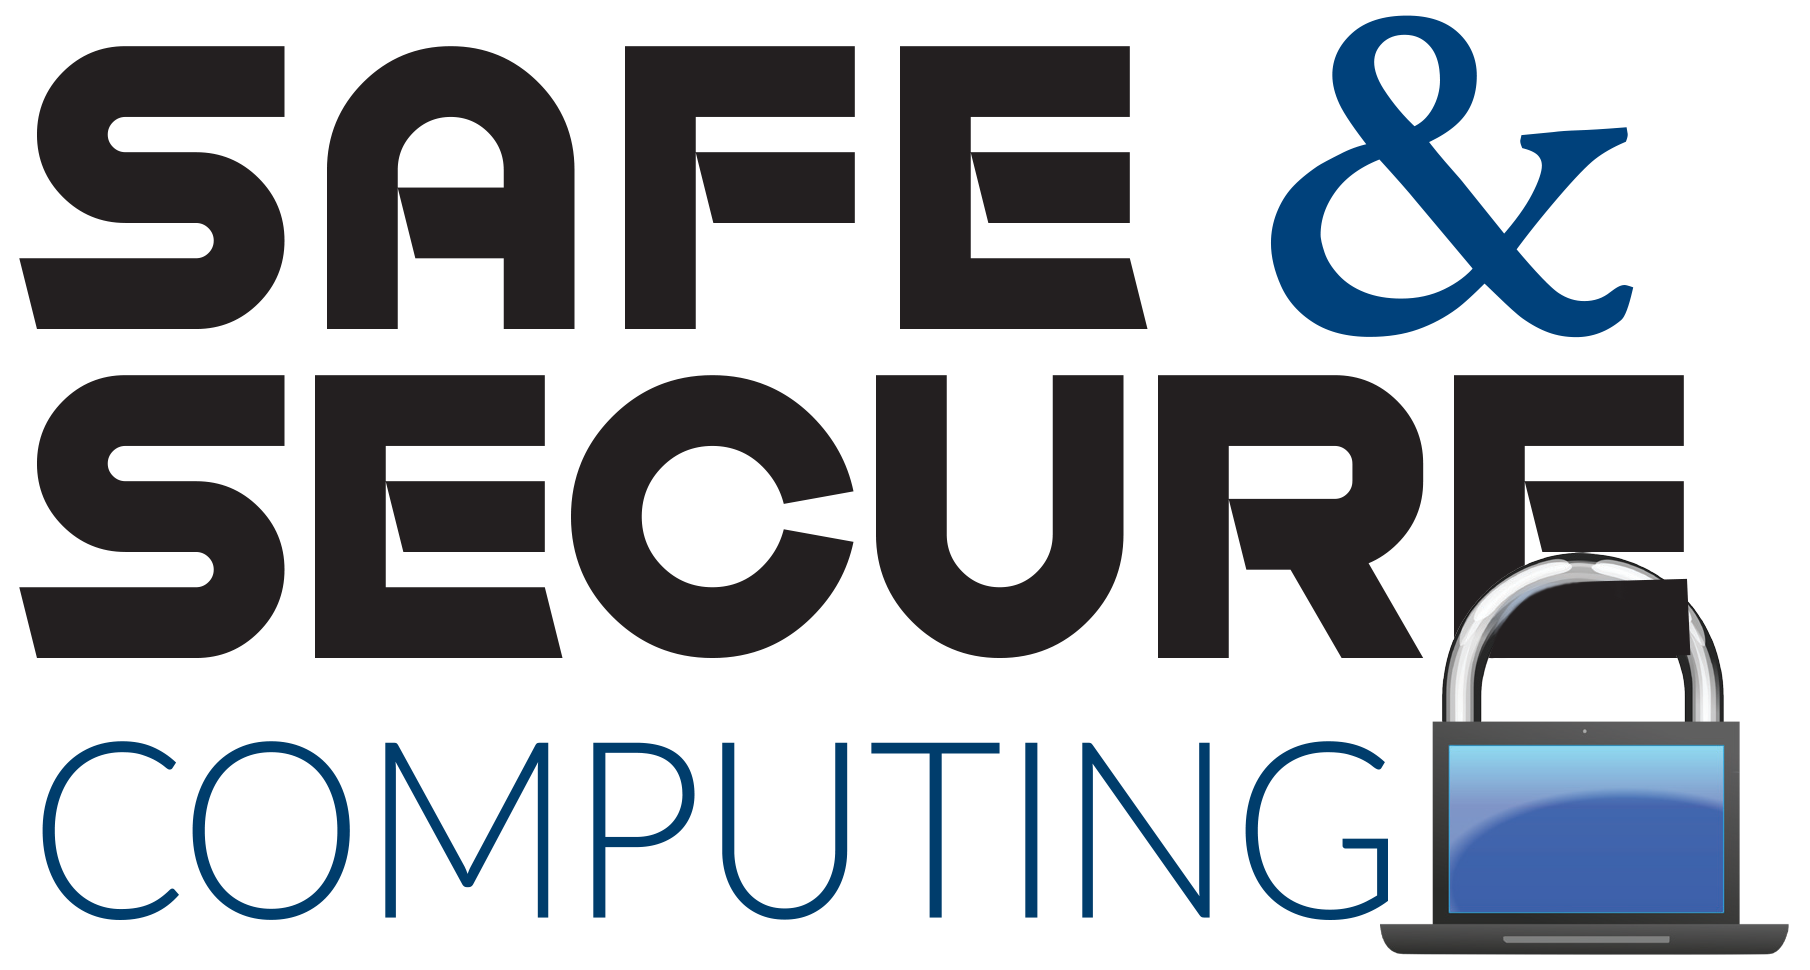 Safe & Secure Computing